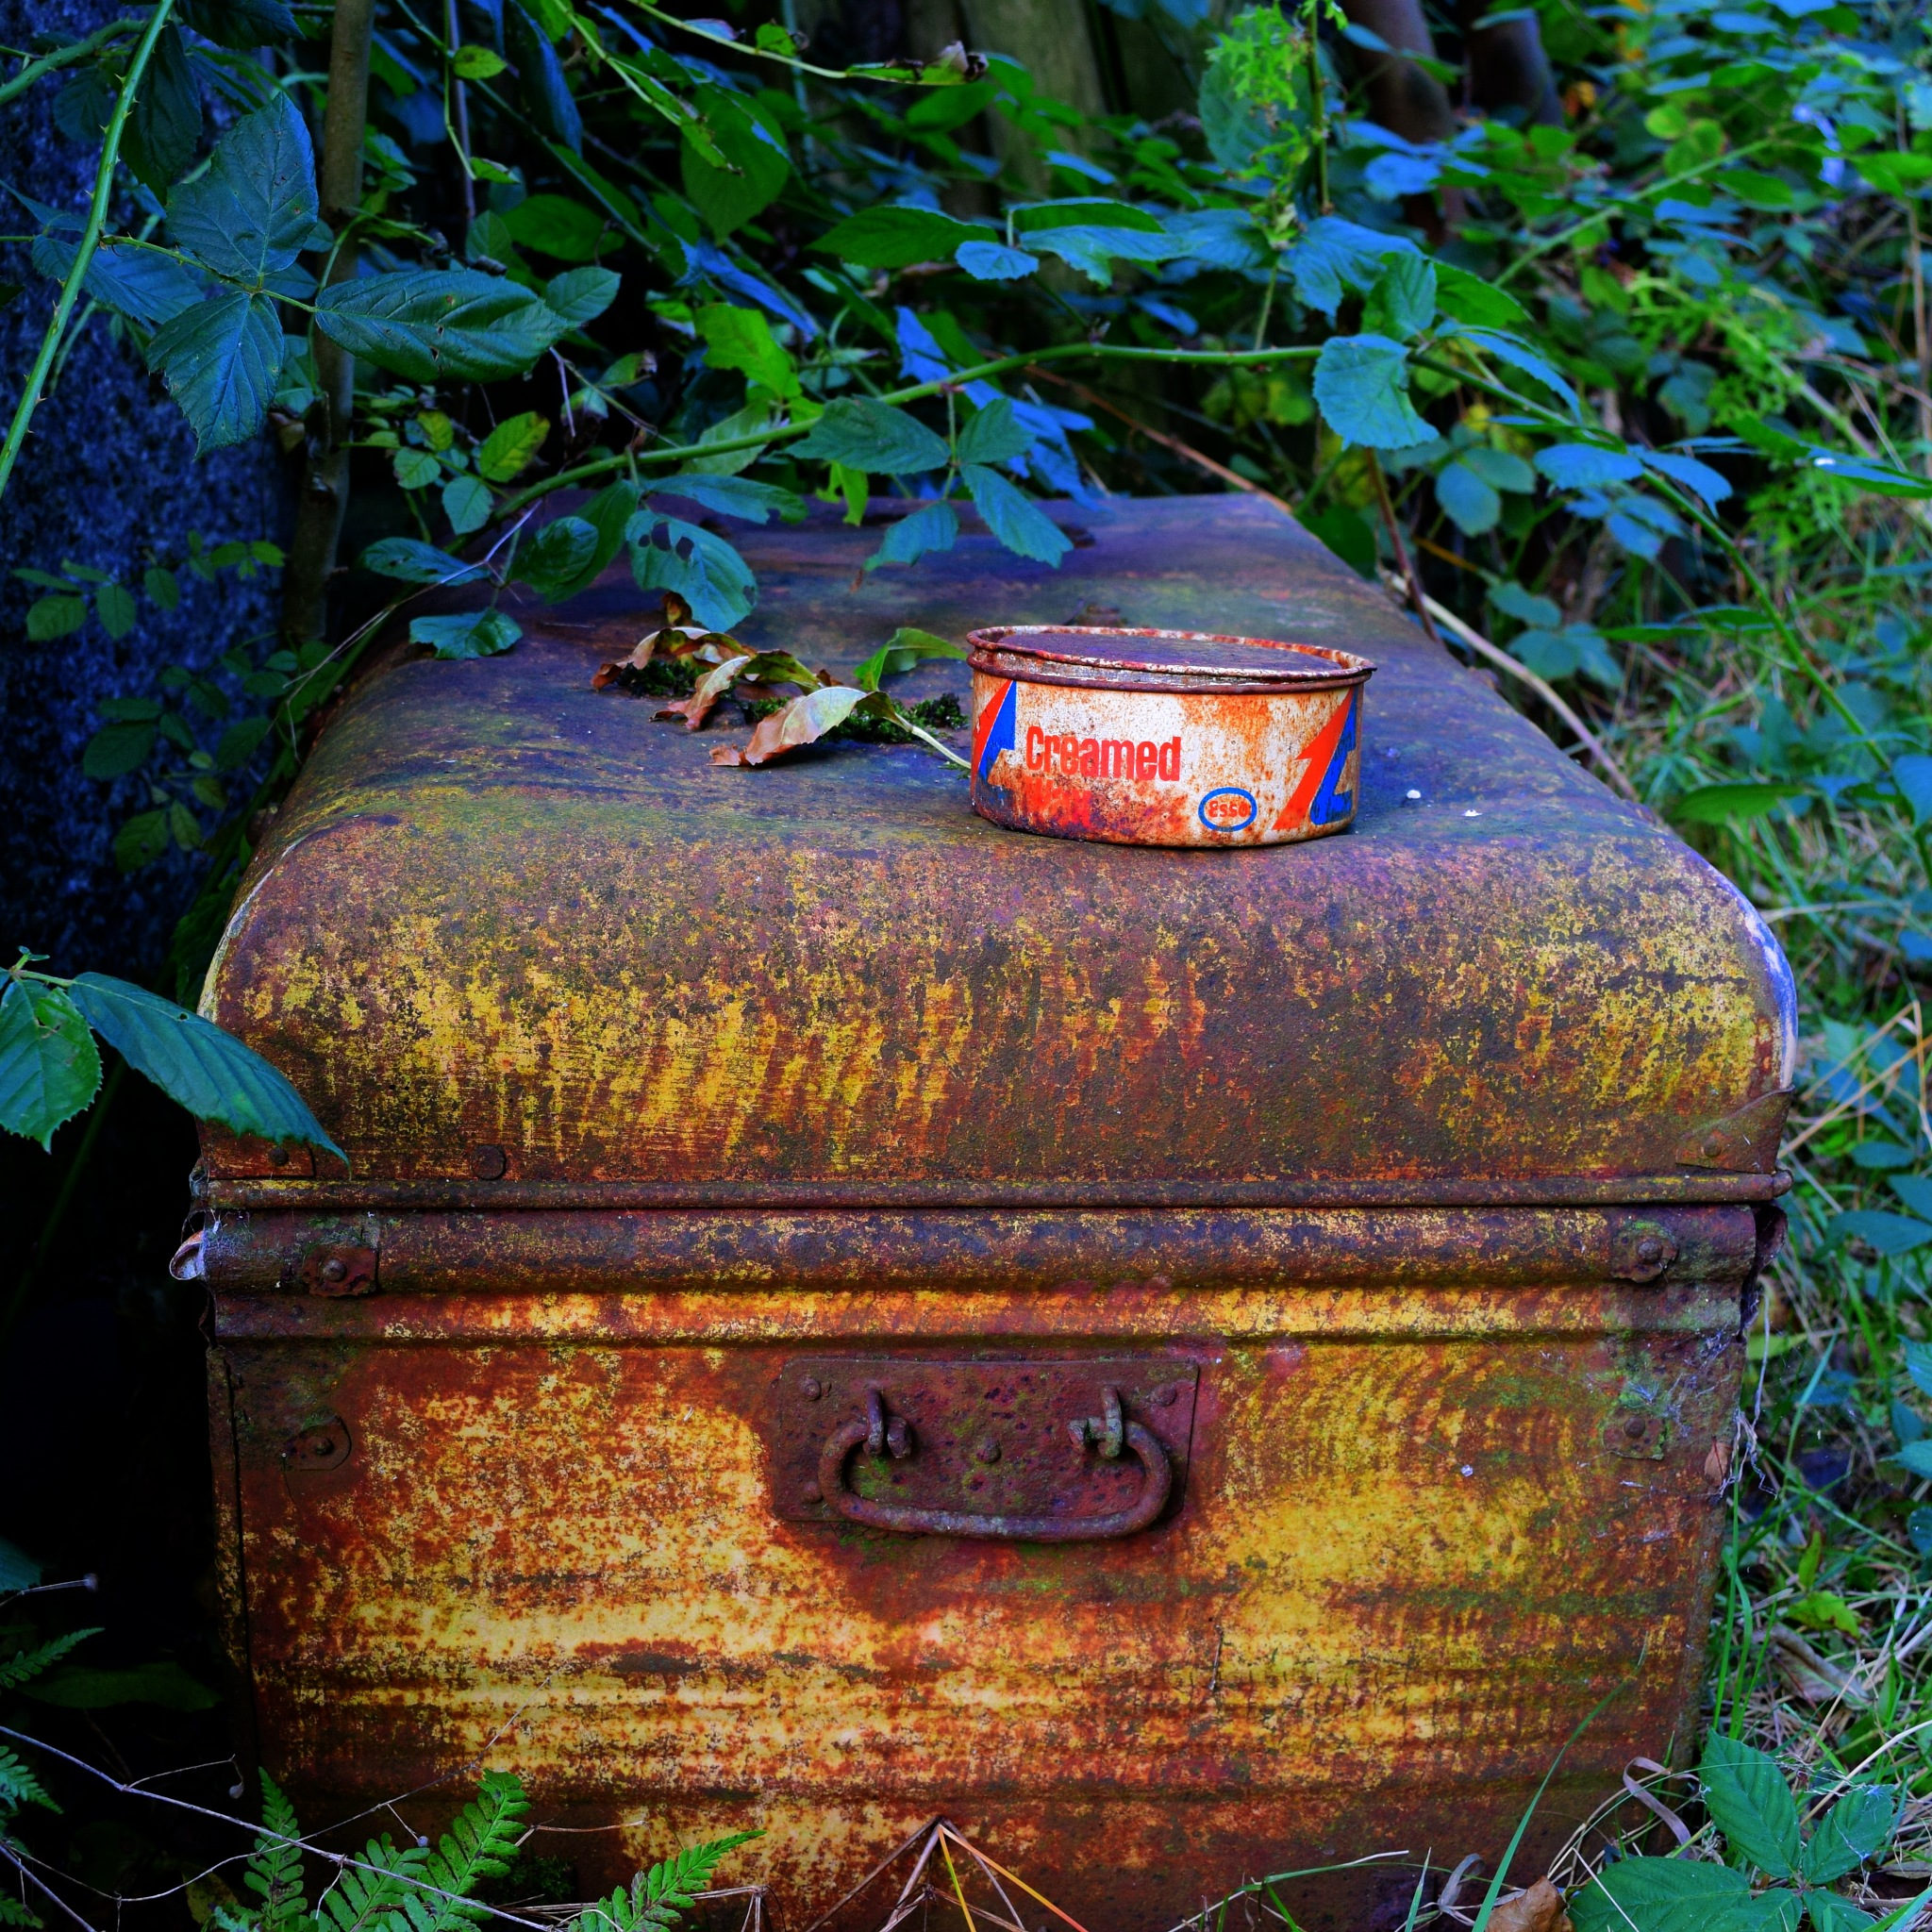 whats in the box by Jason Clarke